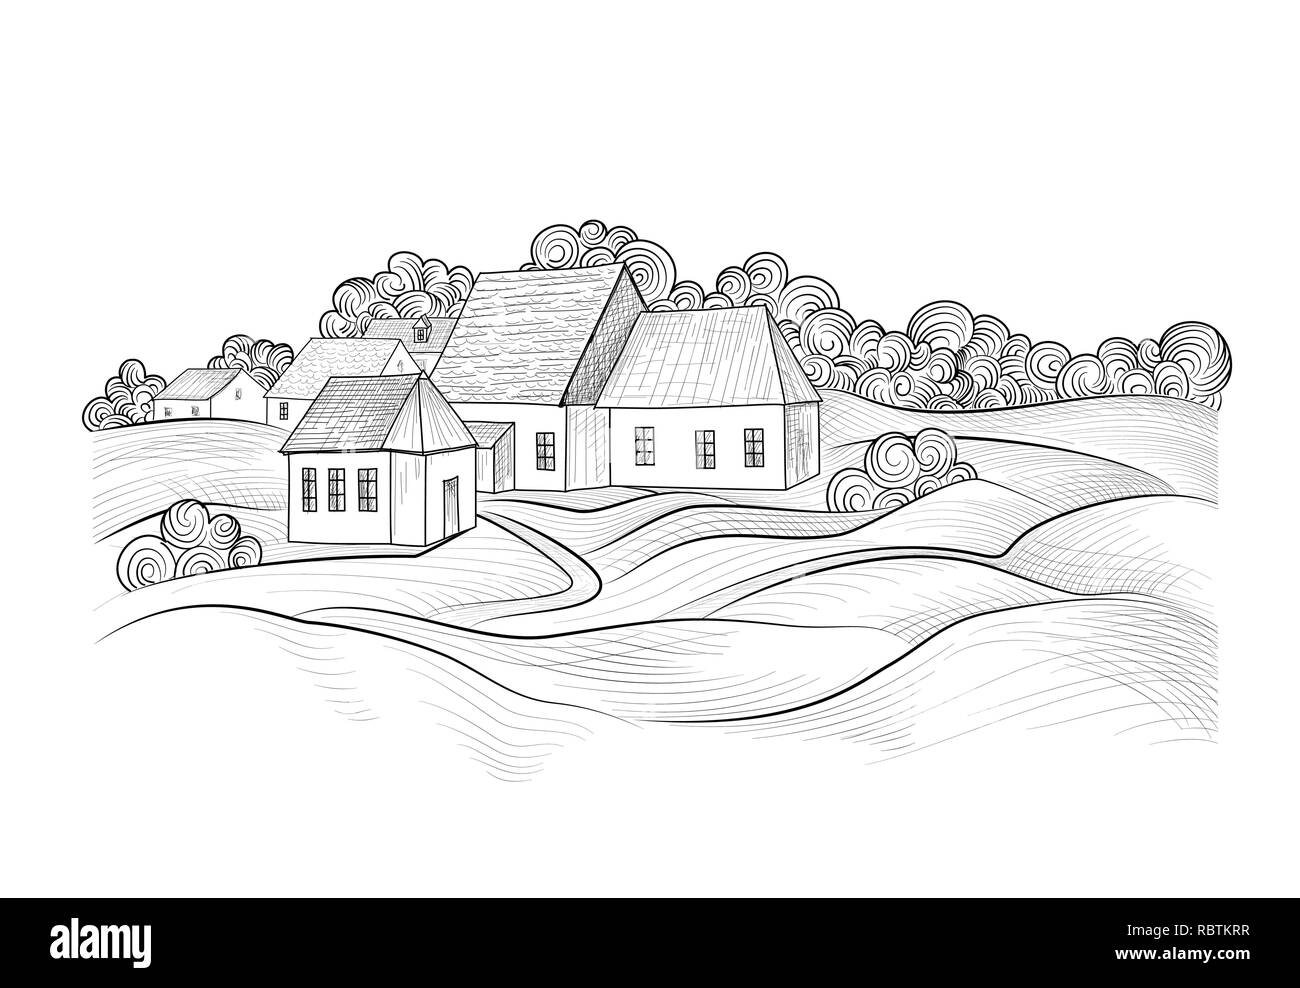 Sketch of rural landscape with hills, fields and countryhouse. Skyline with coundtry houses and farm buildings - Stock Image